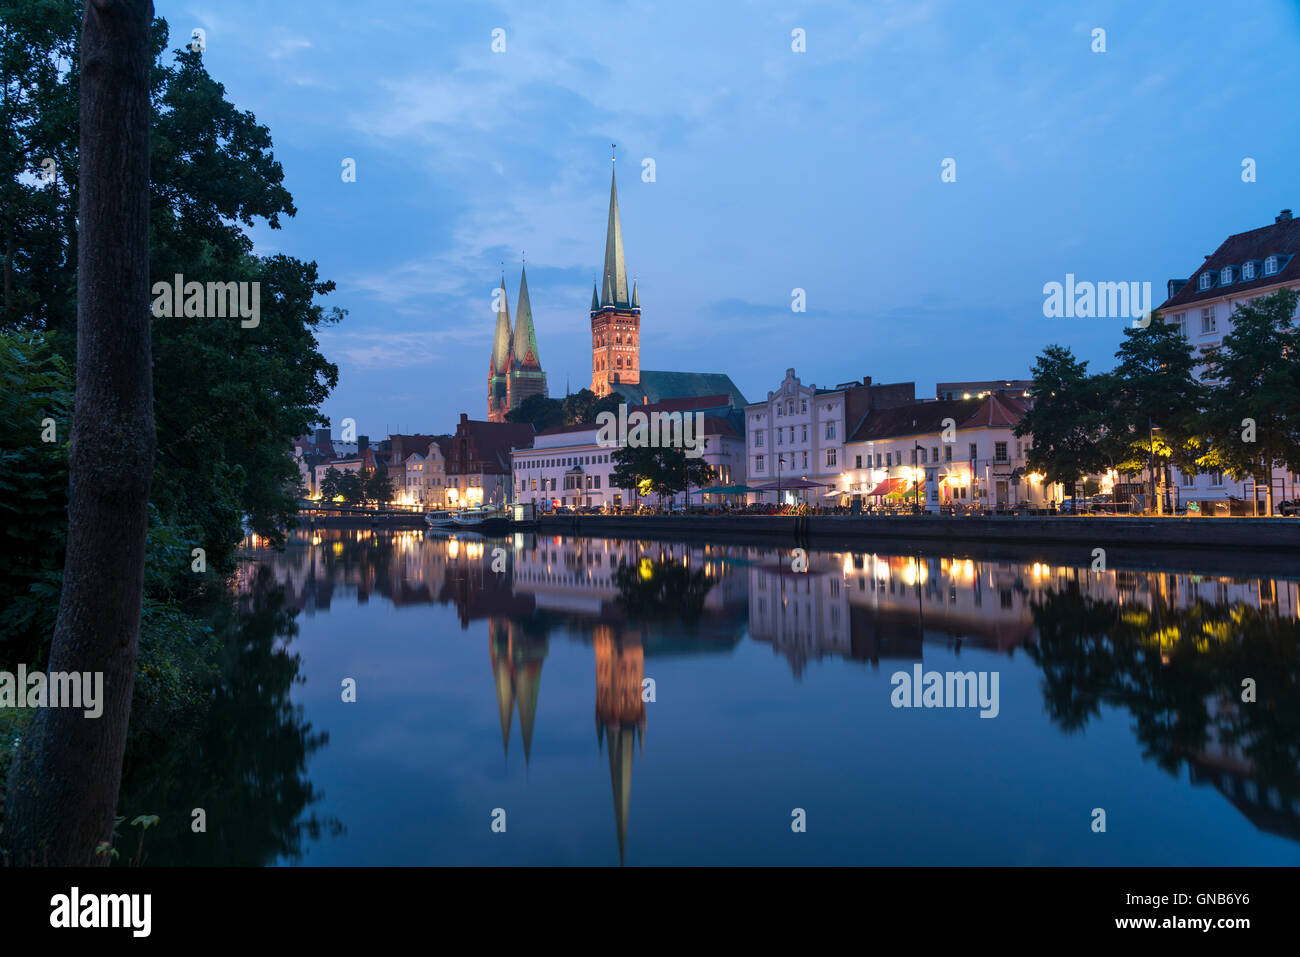 old town and river Trave at dusk, Lübeck, Schleswig-Holstein, Germany - Stock Image